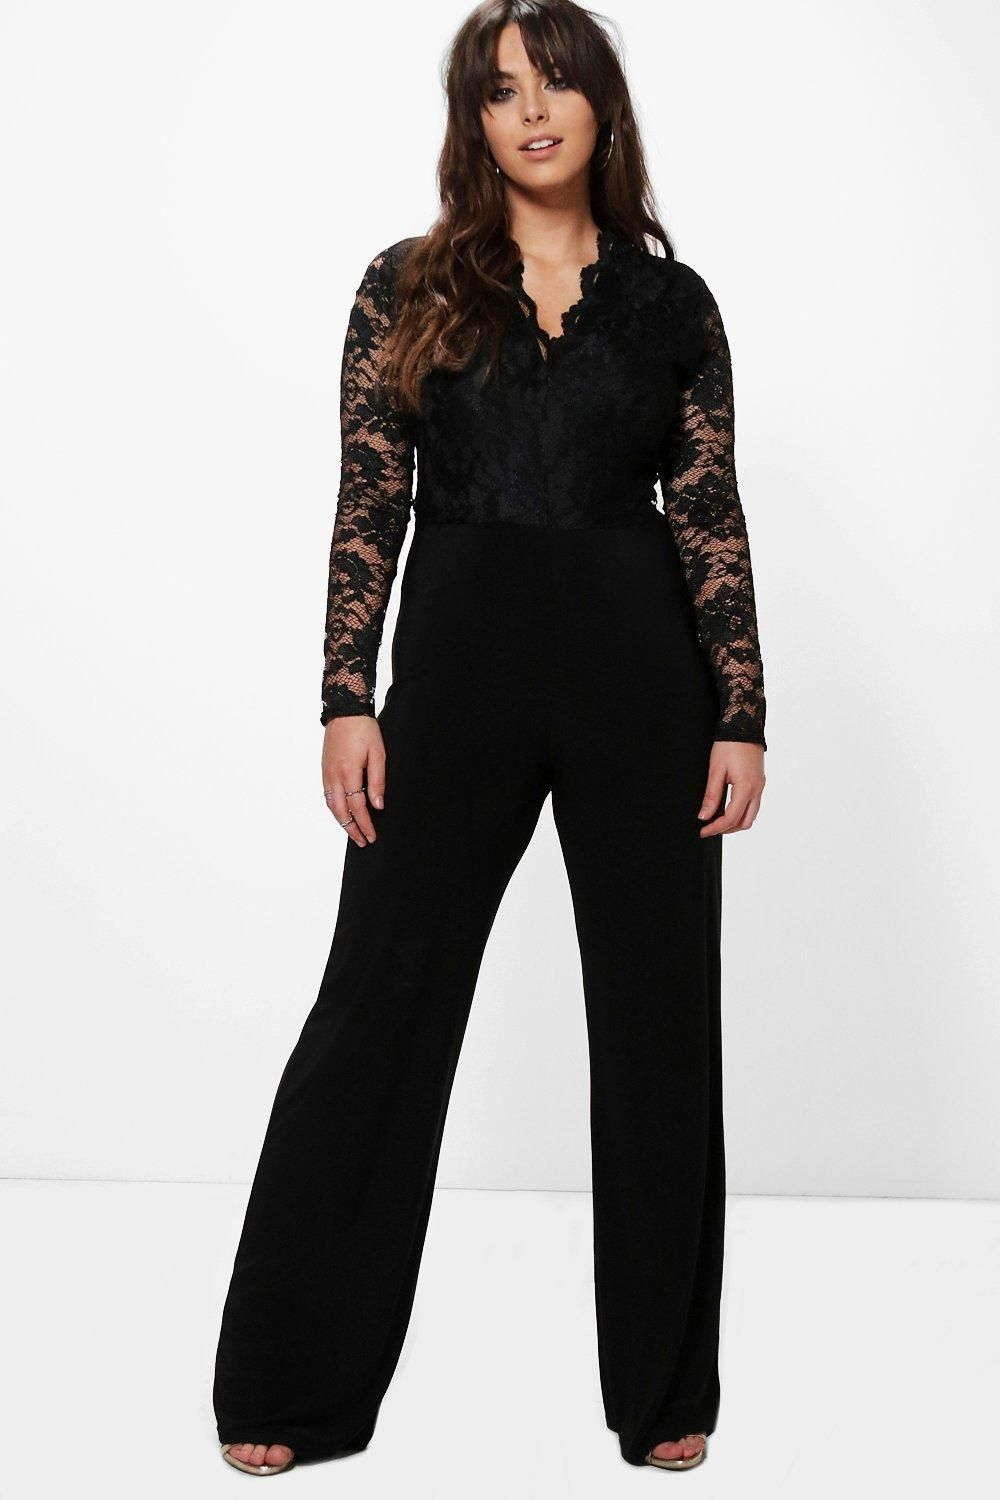 d3386e1d4be Click here to find out about the Plus Iris Long Sleeve Lace Top Slinky  Jumpsuit from Boohoo